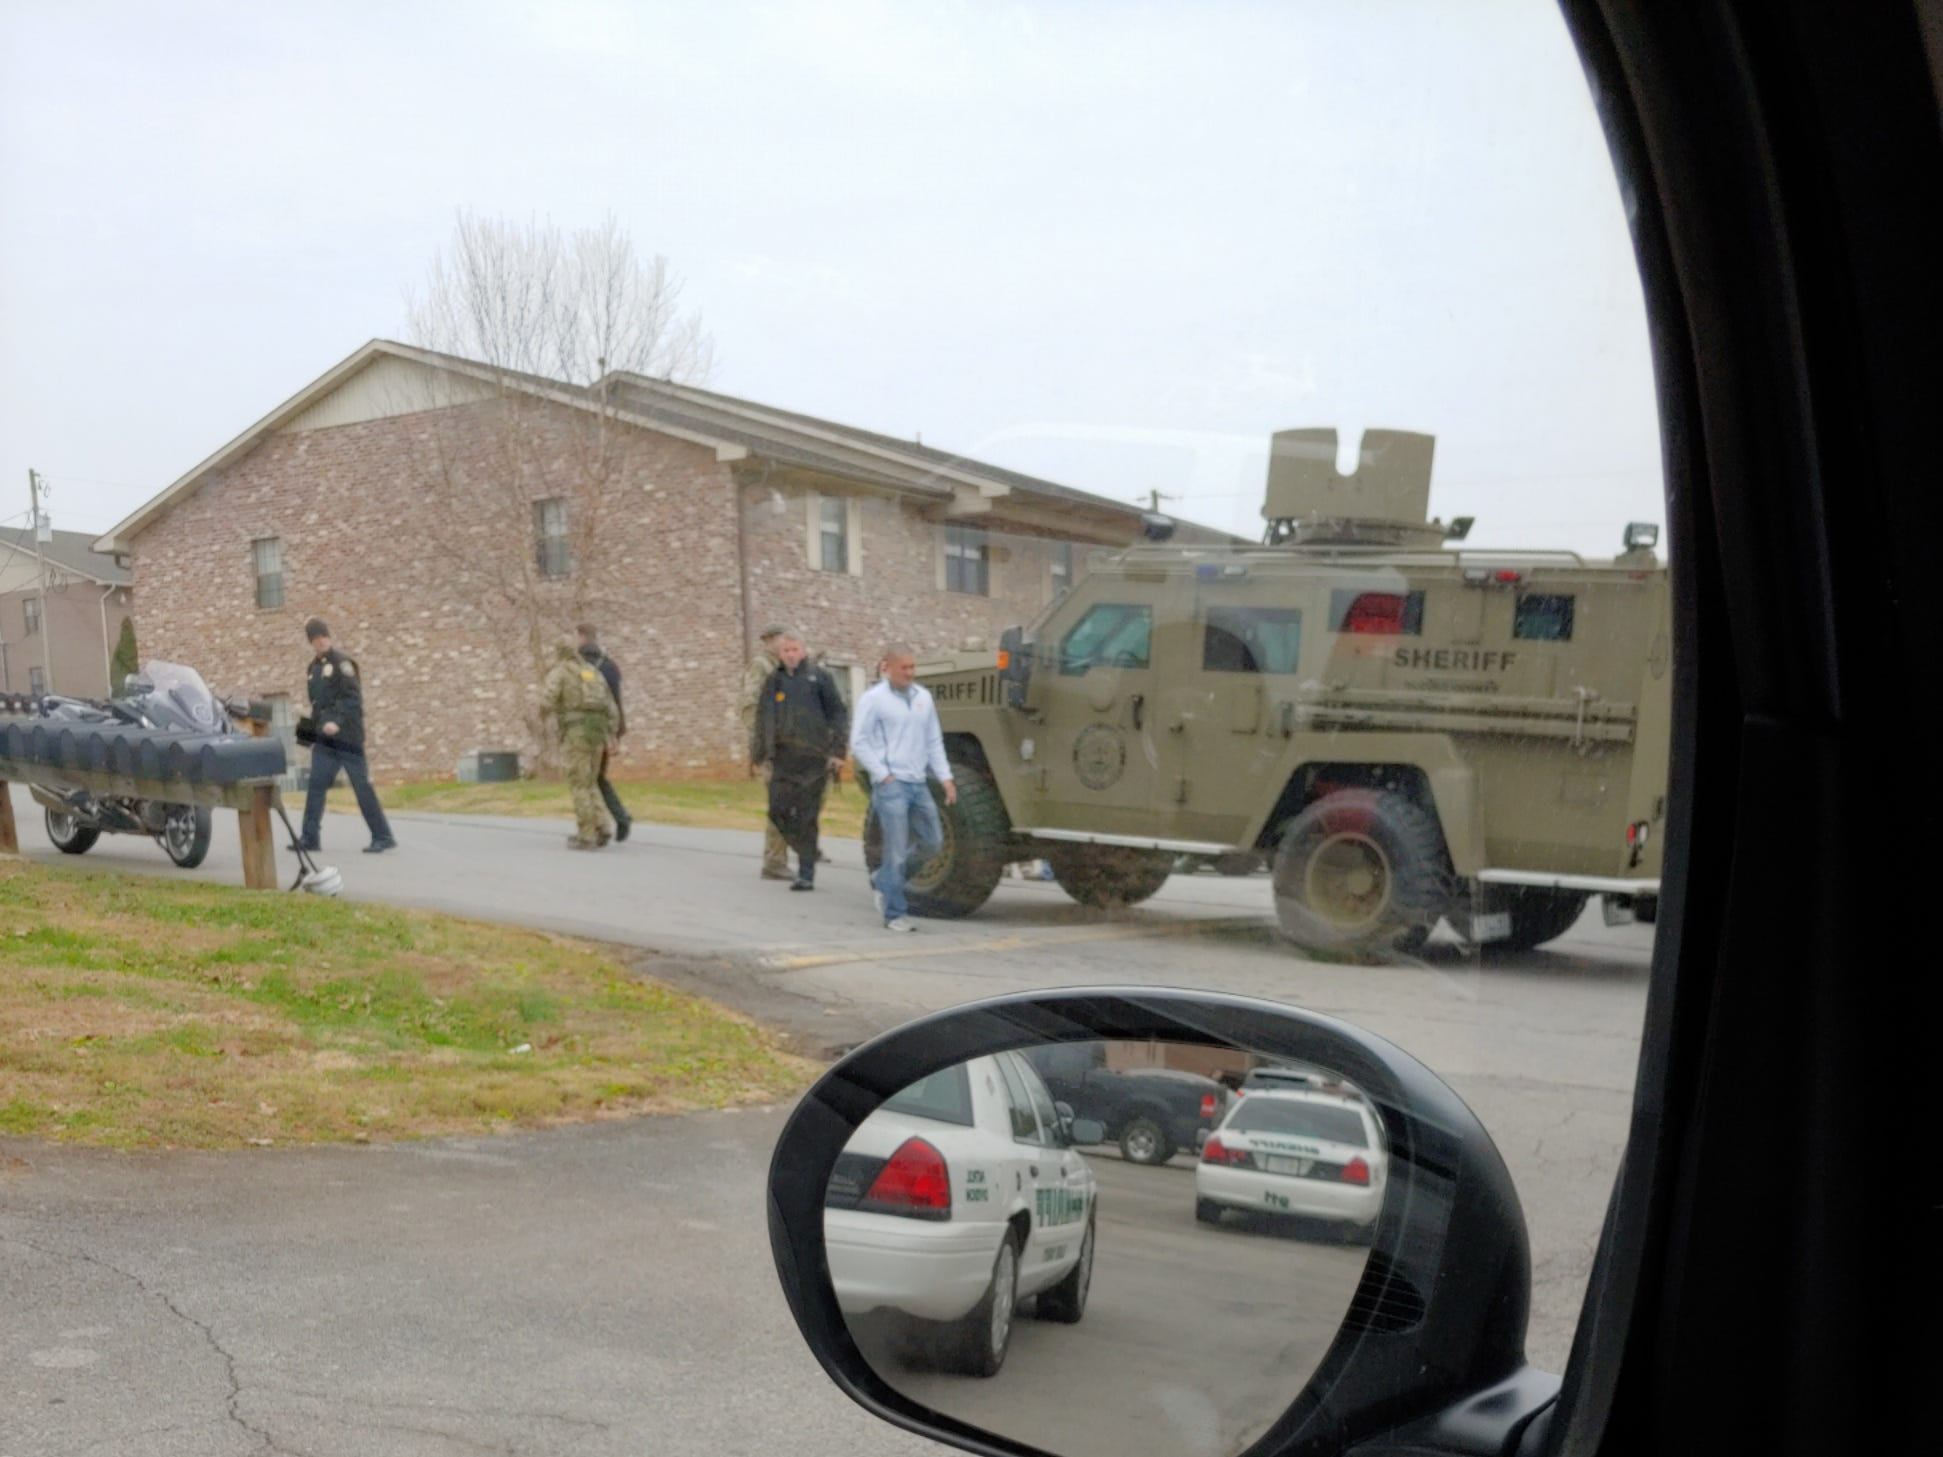 Blount County Sheriff's Office SWAT team is on the scene at a standoff situation at Riverside Manor Apartments Saturday, Dec. 8, 2018.